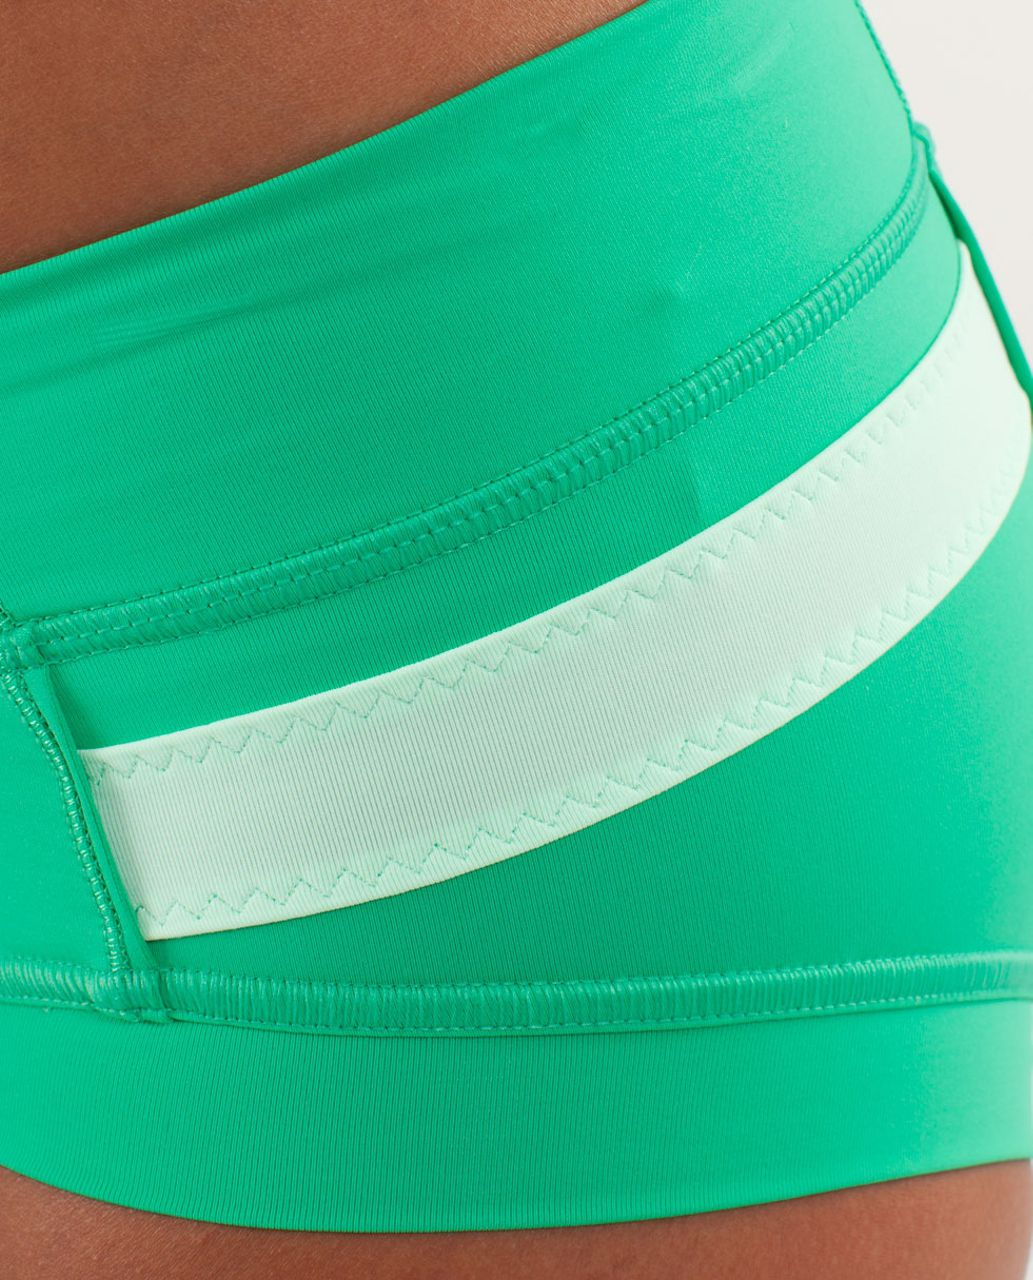 Lululemon Heat It Up Short - Very Green / Fresh Teal